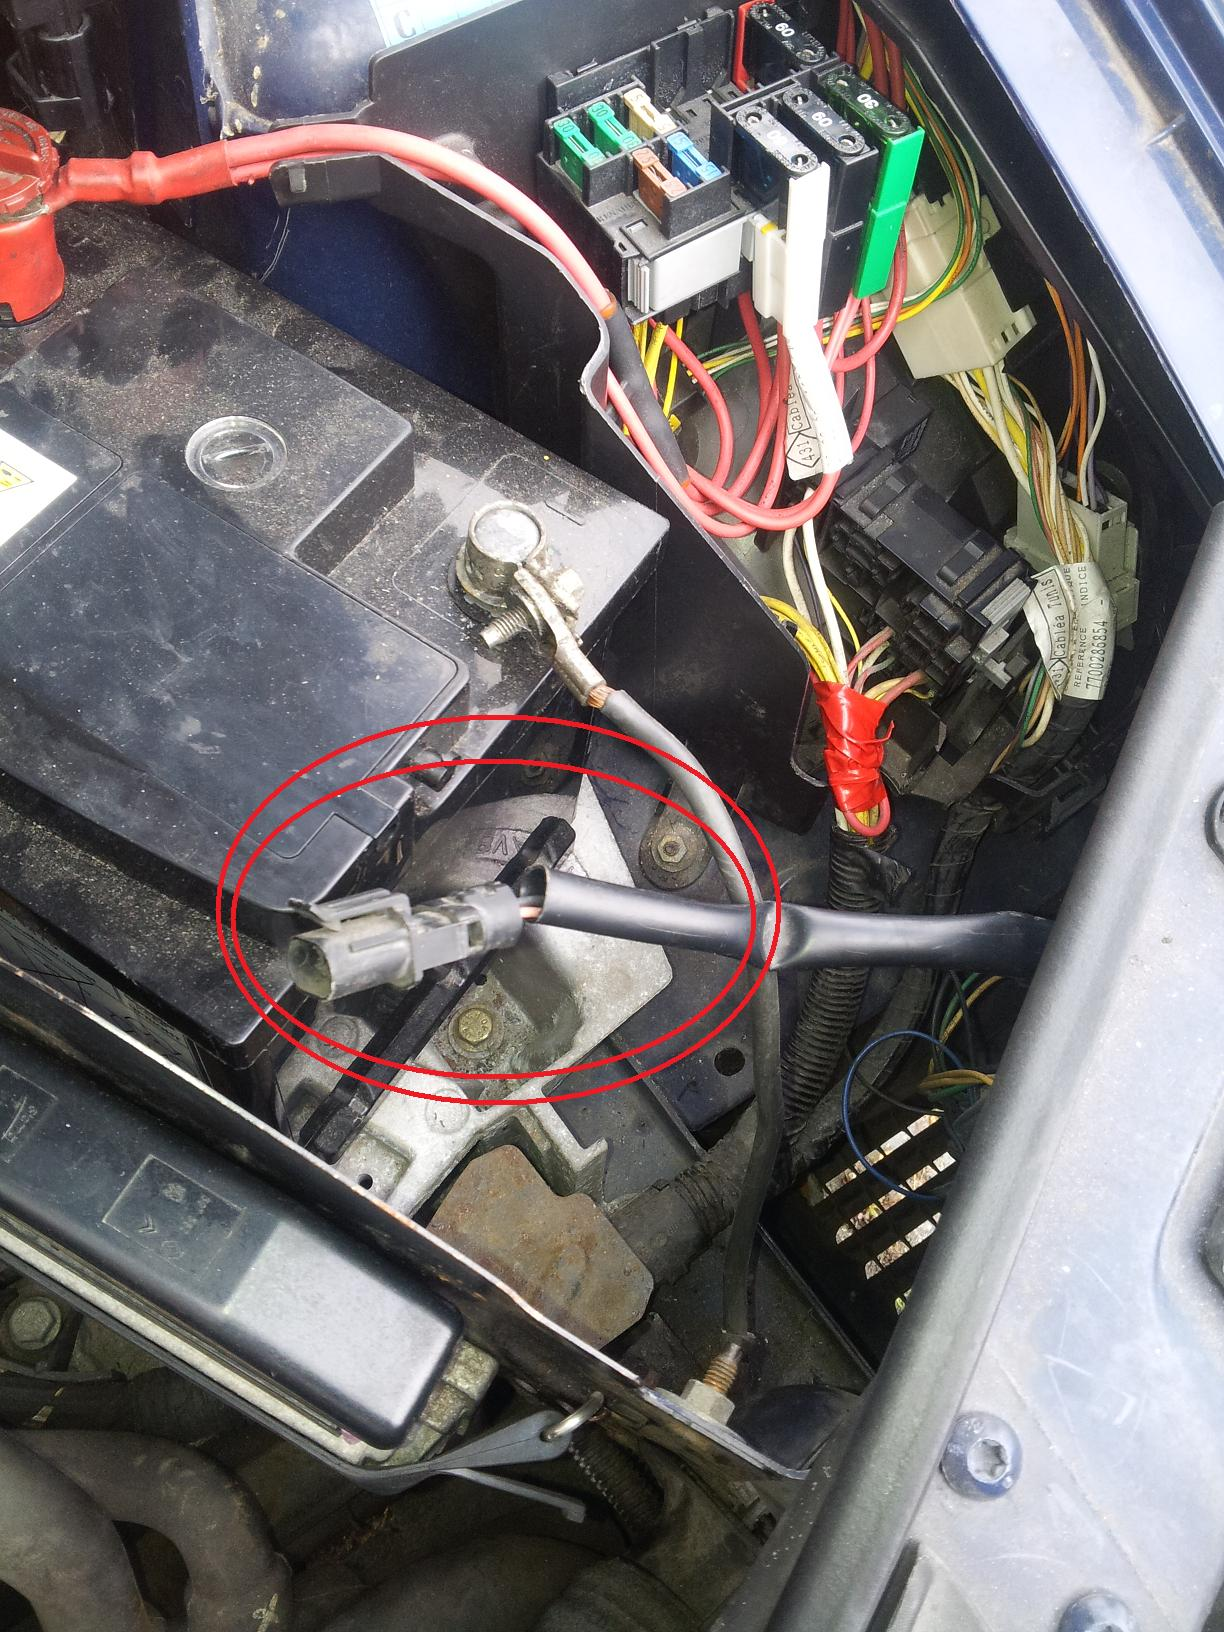 Renault Megane 07 Fuse Box Simple Guide About Wiring Diagram Engine Clio Under Bonnet 34